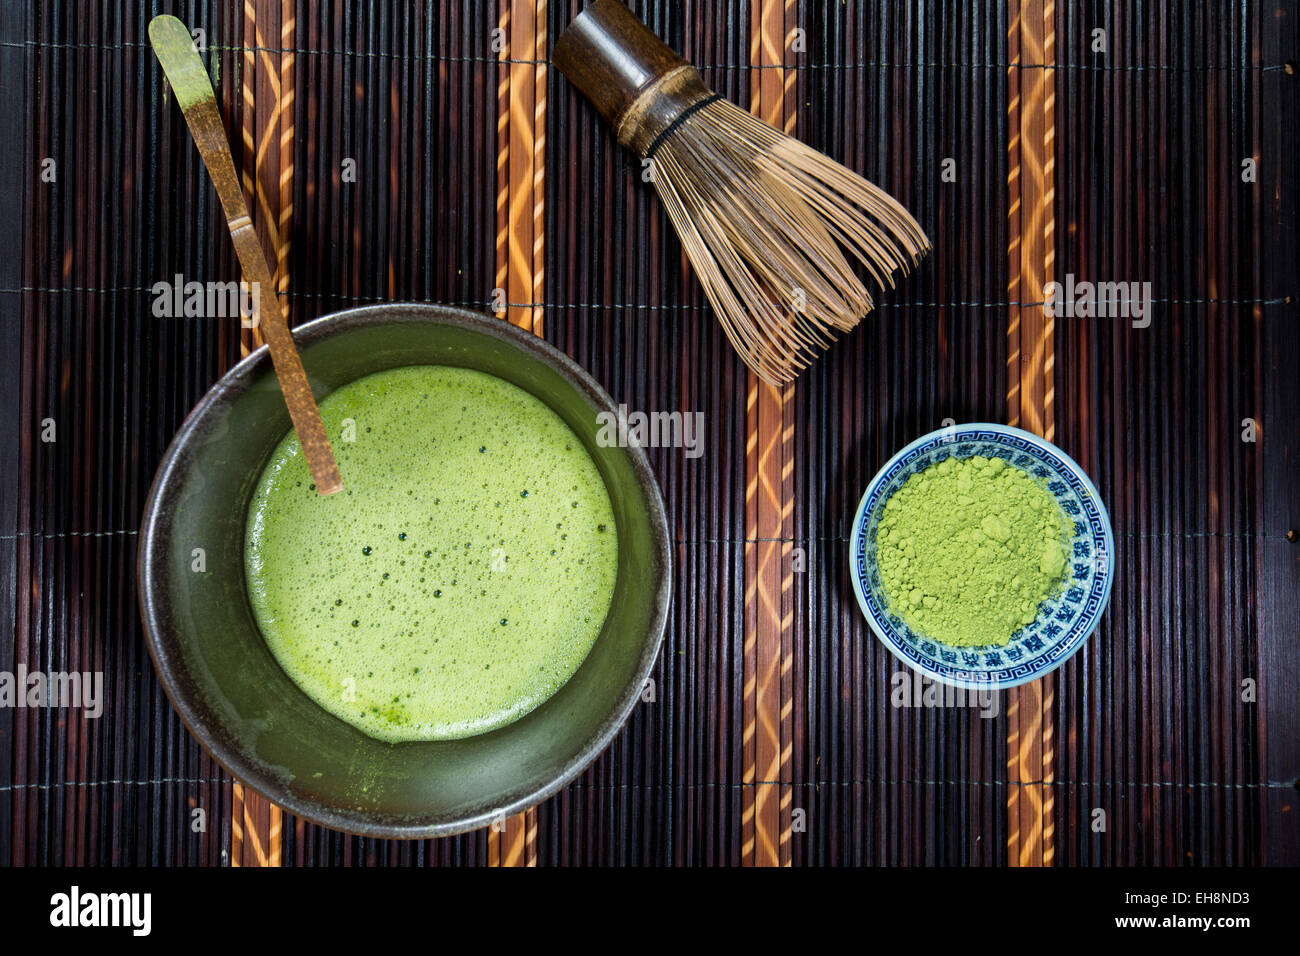 Bowl of Matcha with a Chasen a Chashaku and a bowl of Matcha powder on a place mat - Stock Image